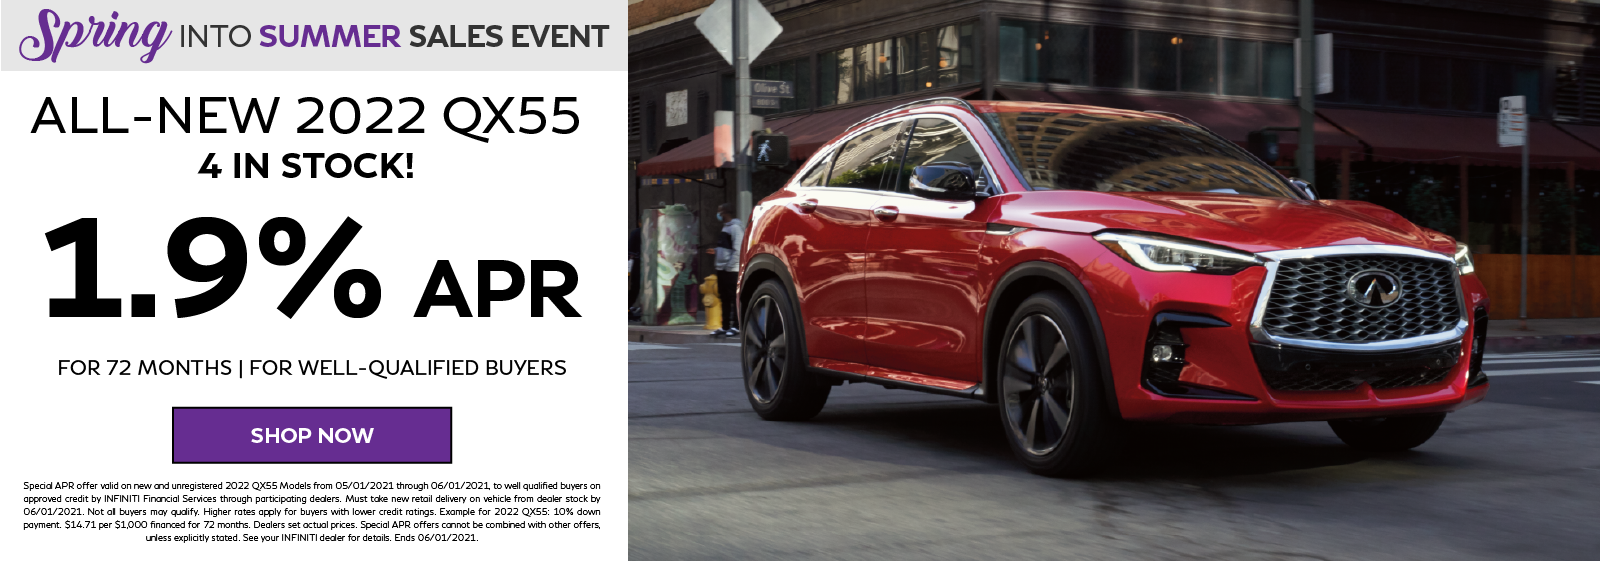 1.9% APR Financing on the all-new 2022 INFINITI QX55. Click to shop now.